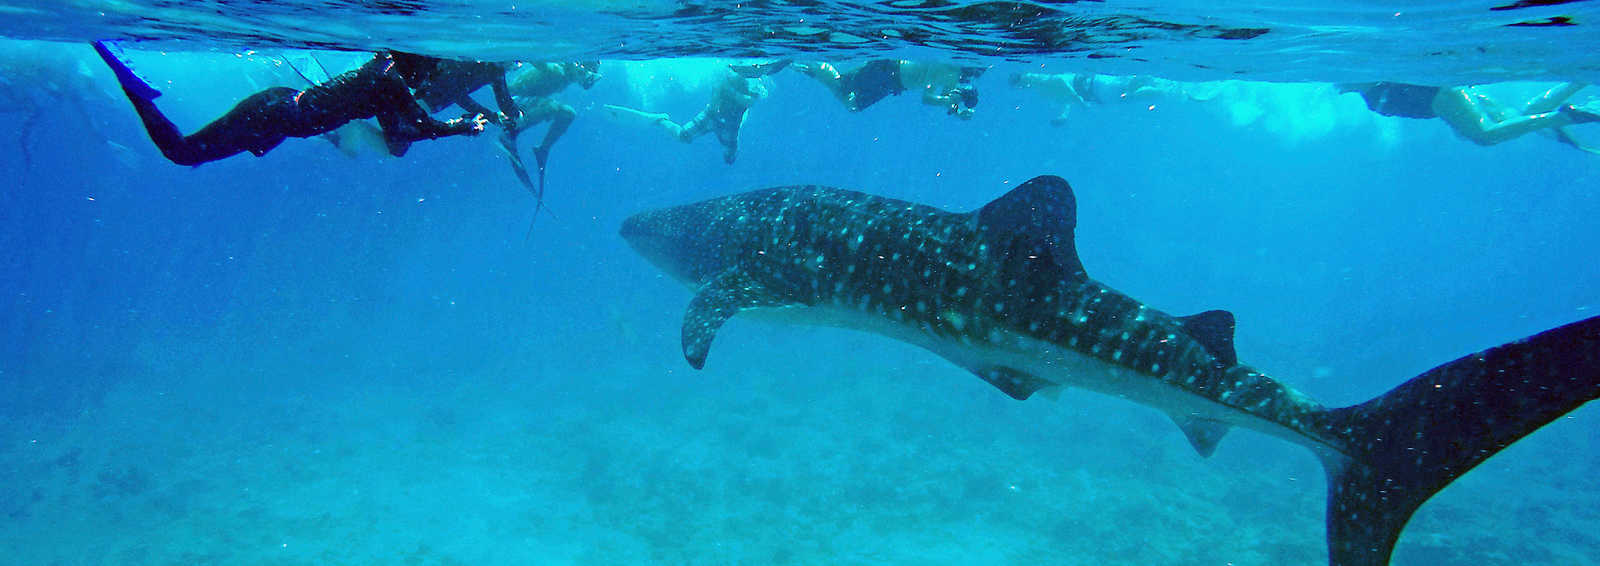 Snorkelling with Whale shark, Indian Ocean, Maldives